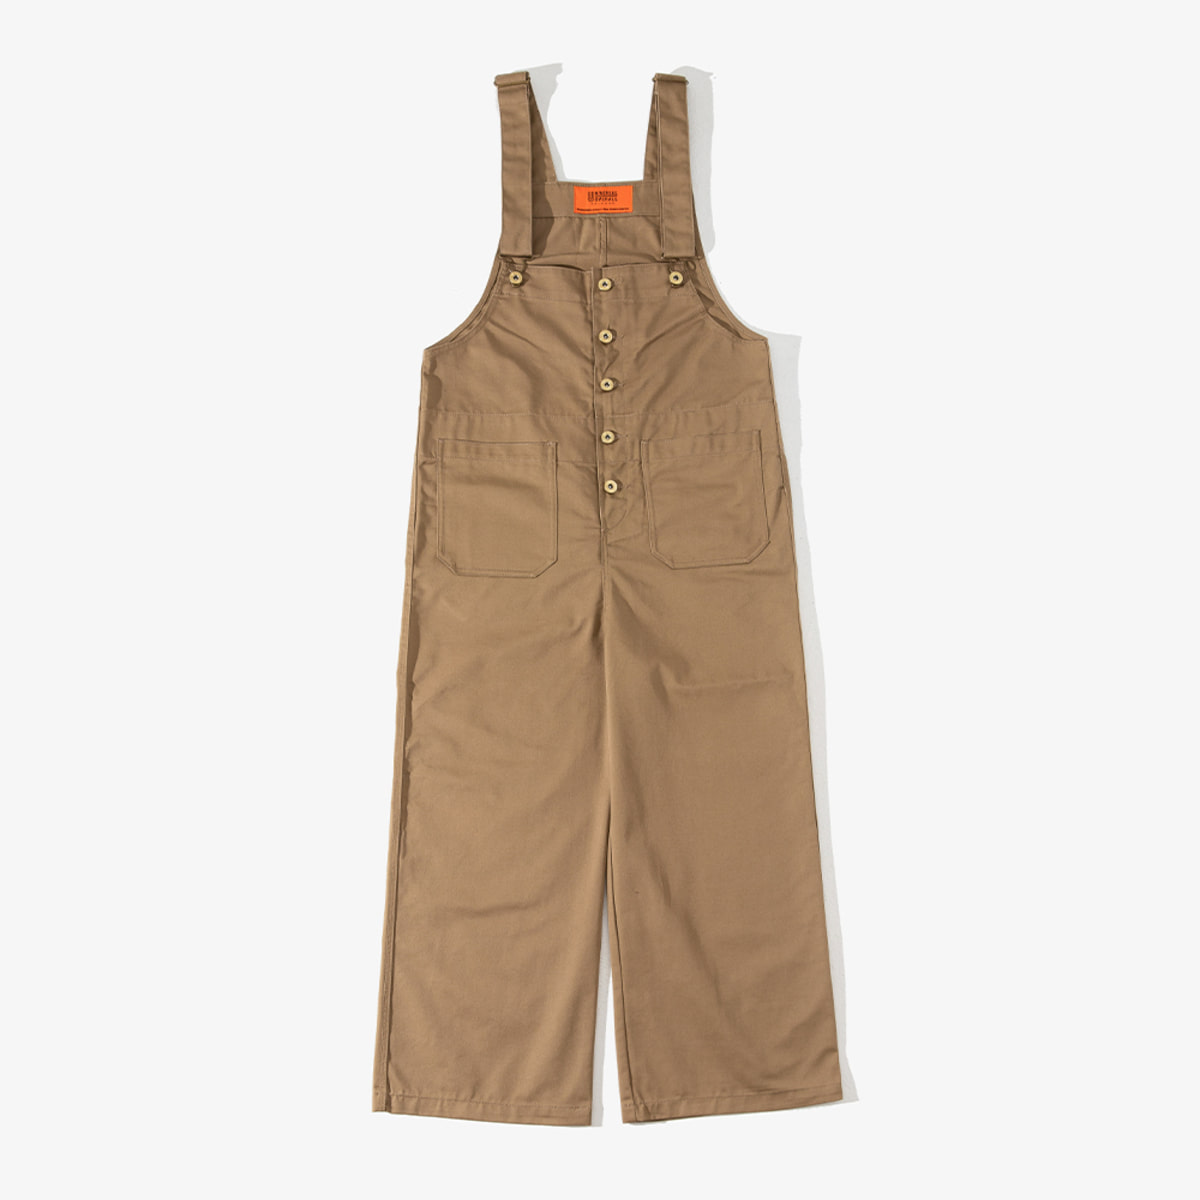 WOMENS BASIC OVERALL BEIGE